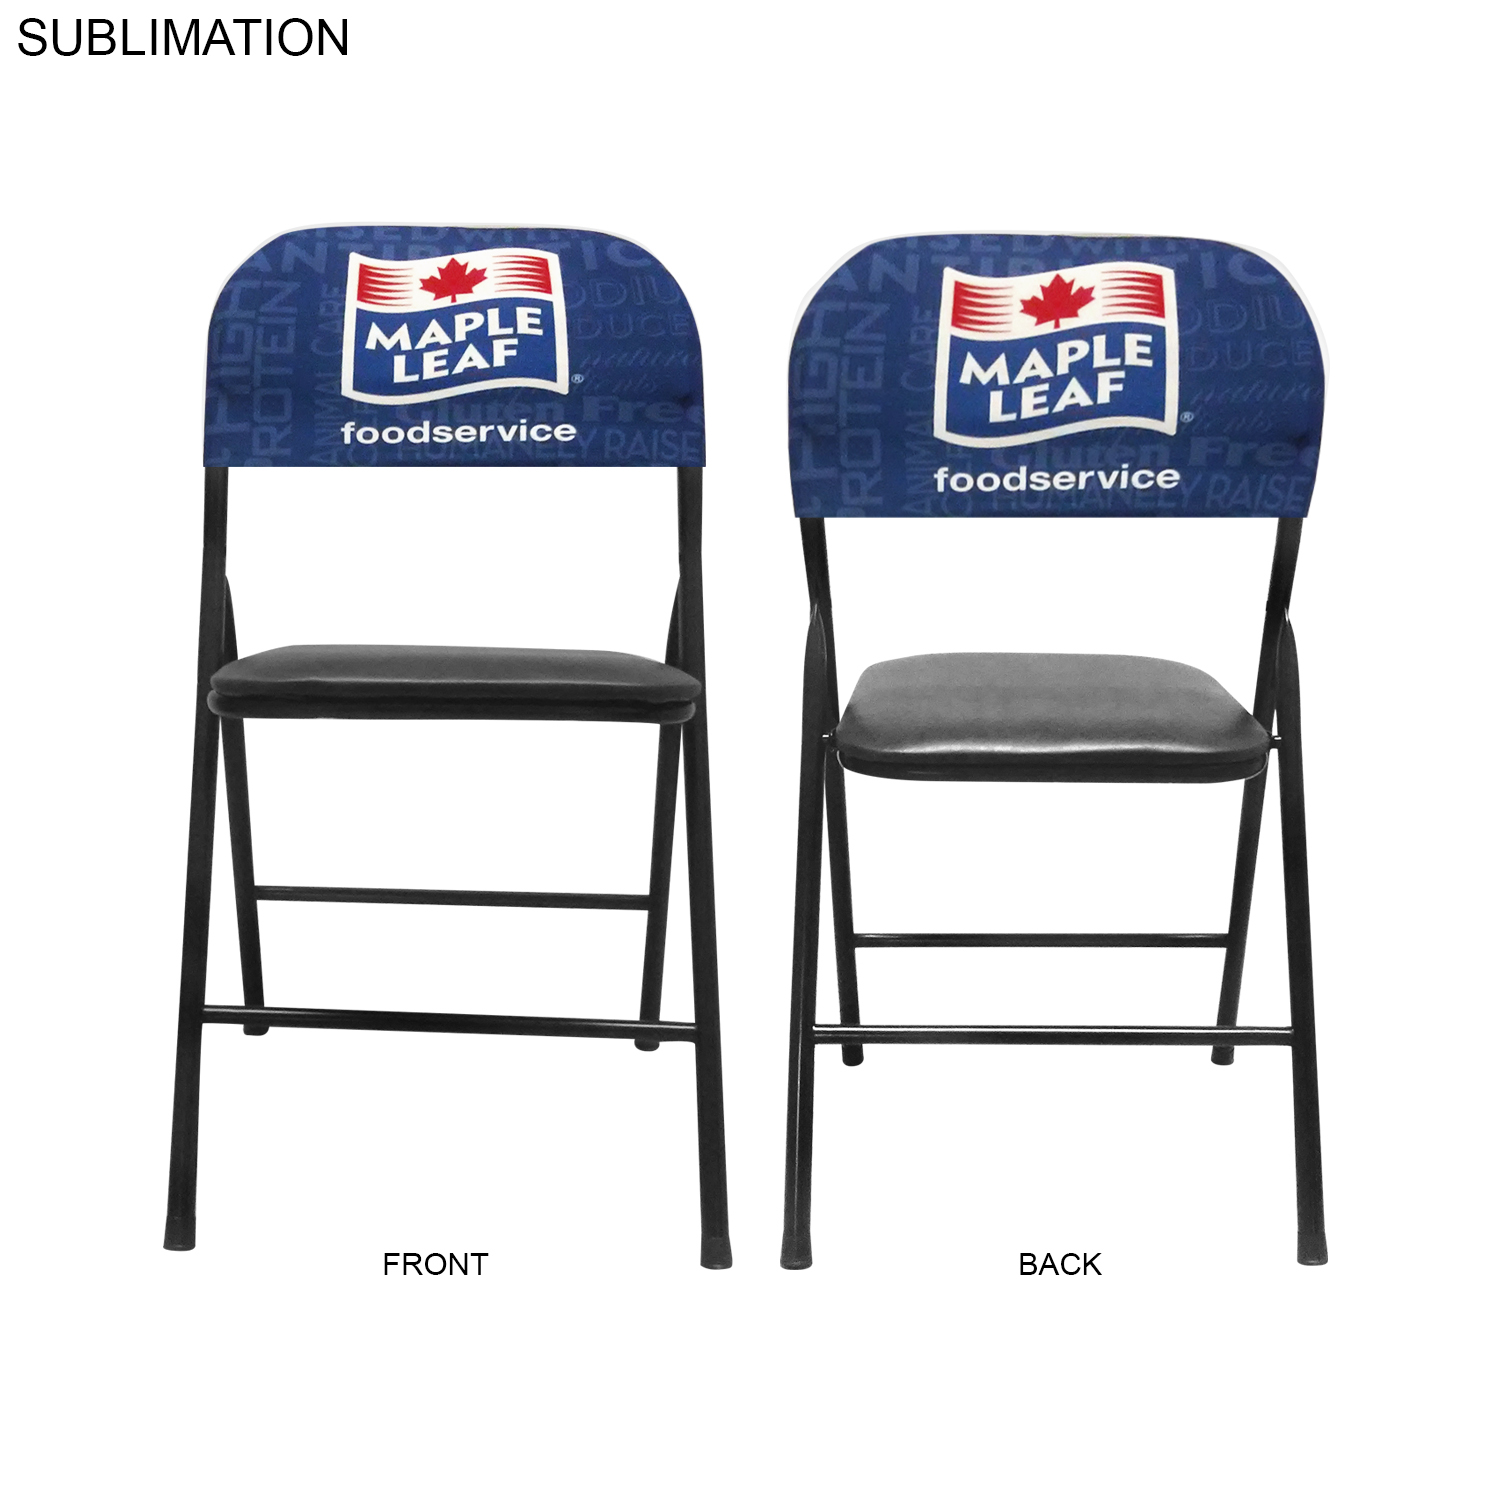 Sublimated Stretch Seat Cover, 15 x 10 - Full Colour Imprint (#SU548)